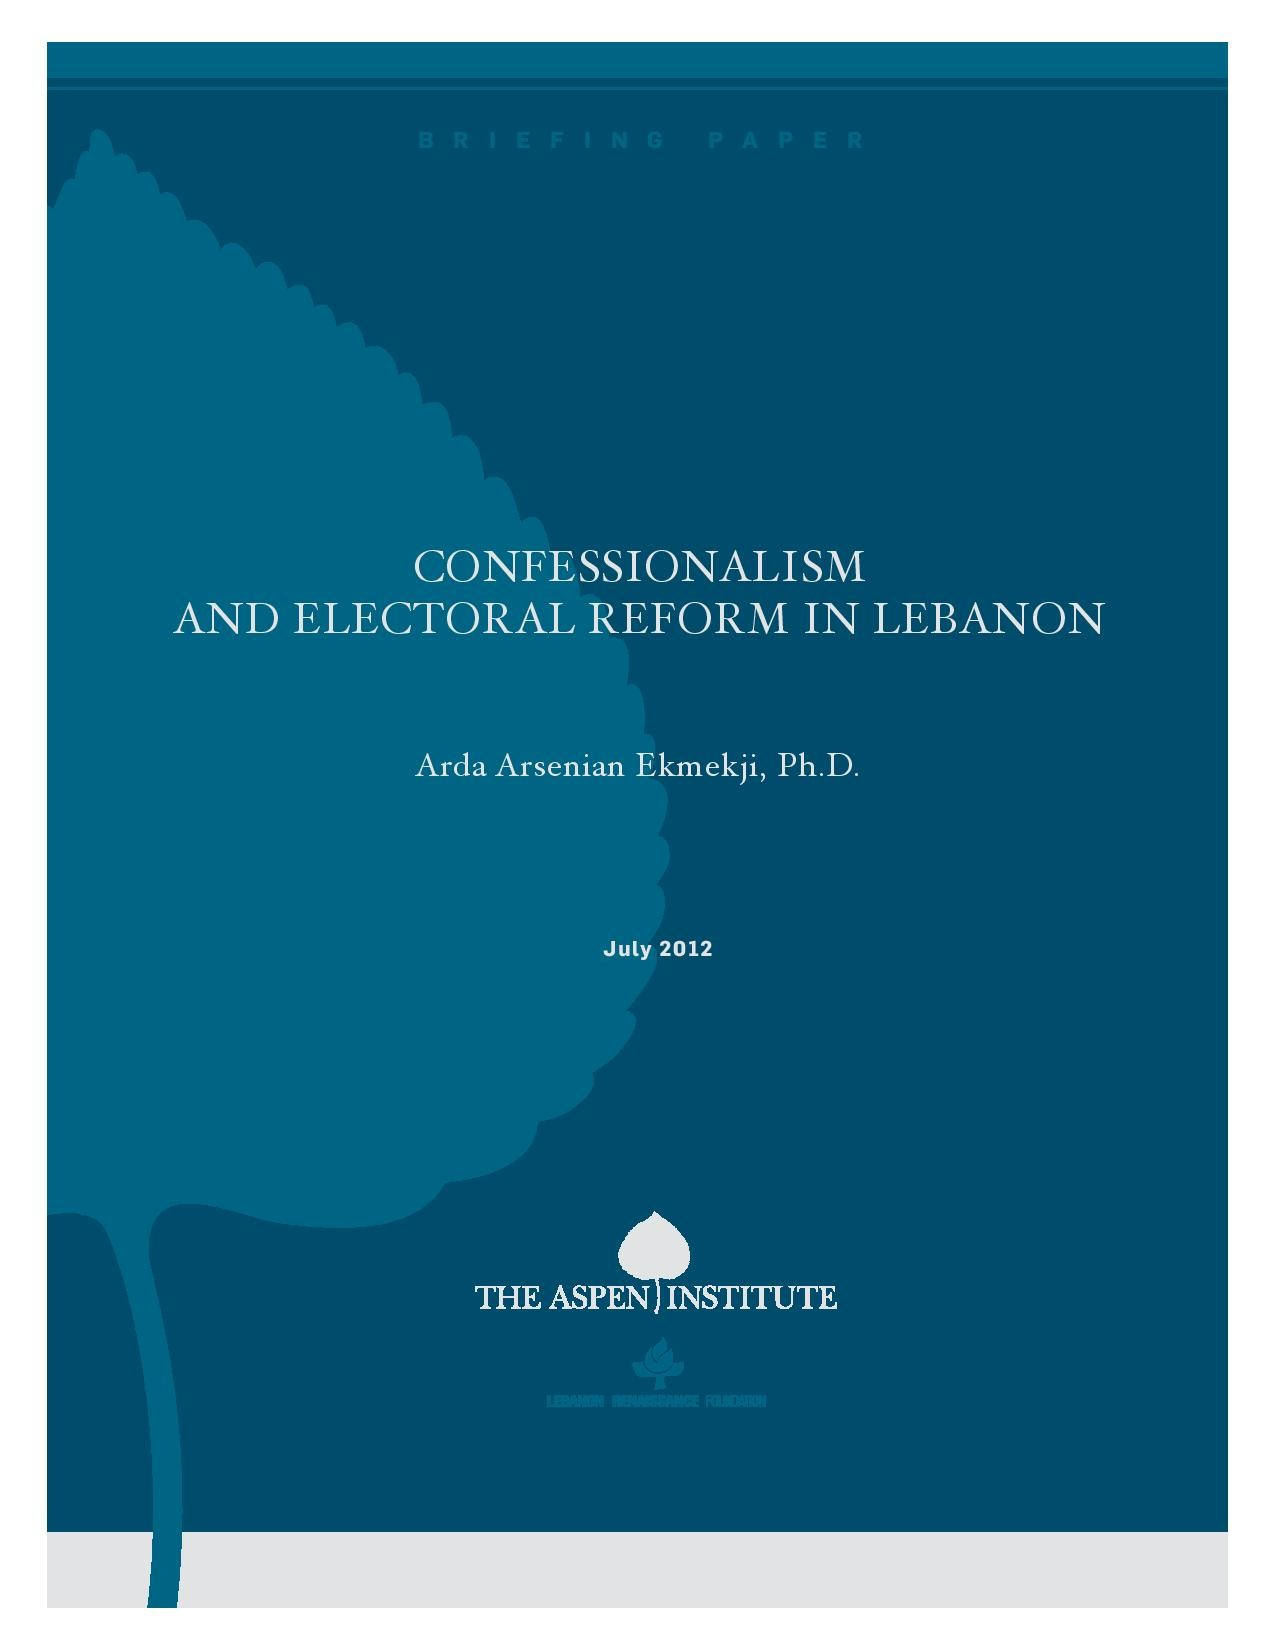 Confessionalism and Electoral Reform in Lebanon